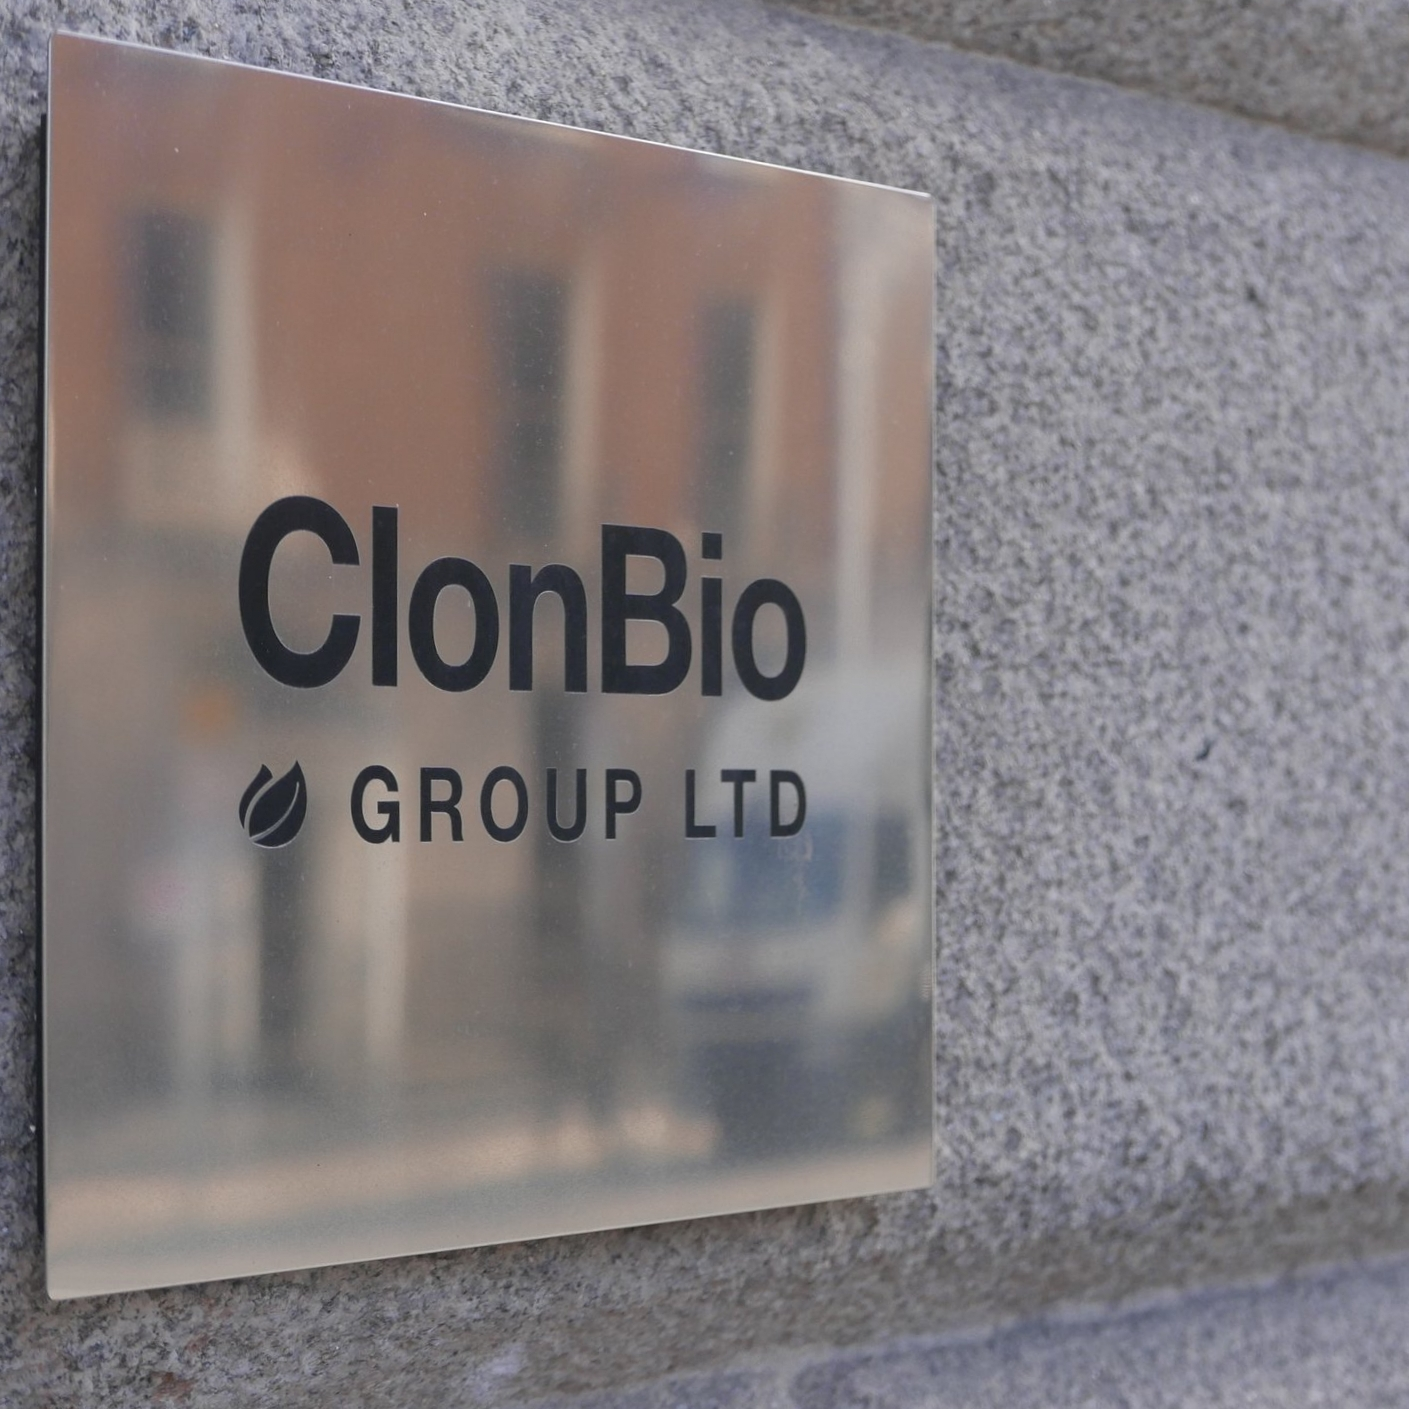 ClonBio Group Ltd. - ClonBio Group Ltd. is a family-owned Irish agribusiness that manufactures sustainable bioproducts from grain. The Group is a market leader and large-scale producer of renewable energy and animal nutrition in Europe. ClonBio also invests in biotechnology that creates commercially viable bioproducts.